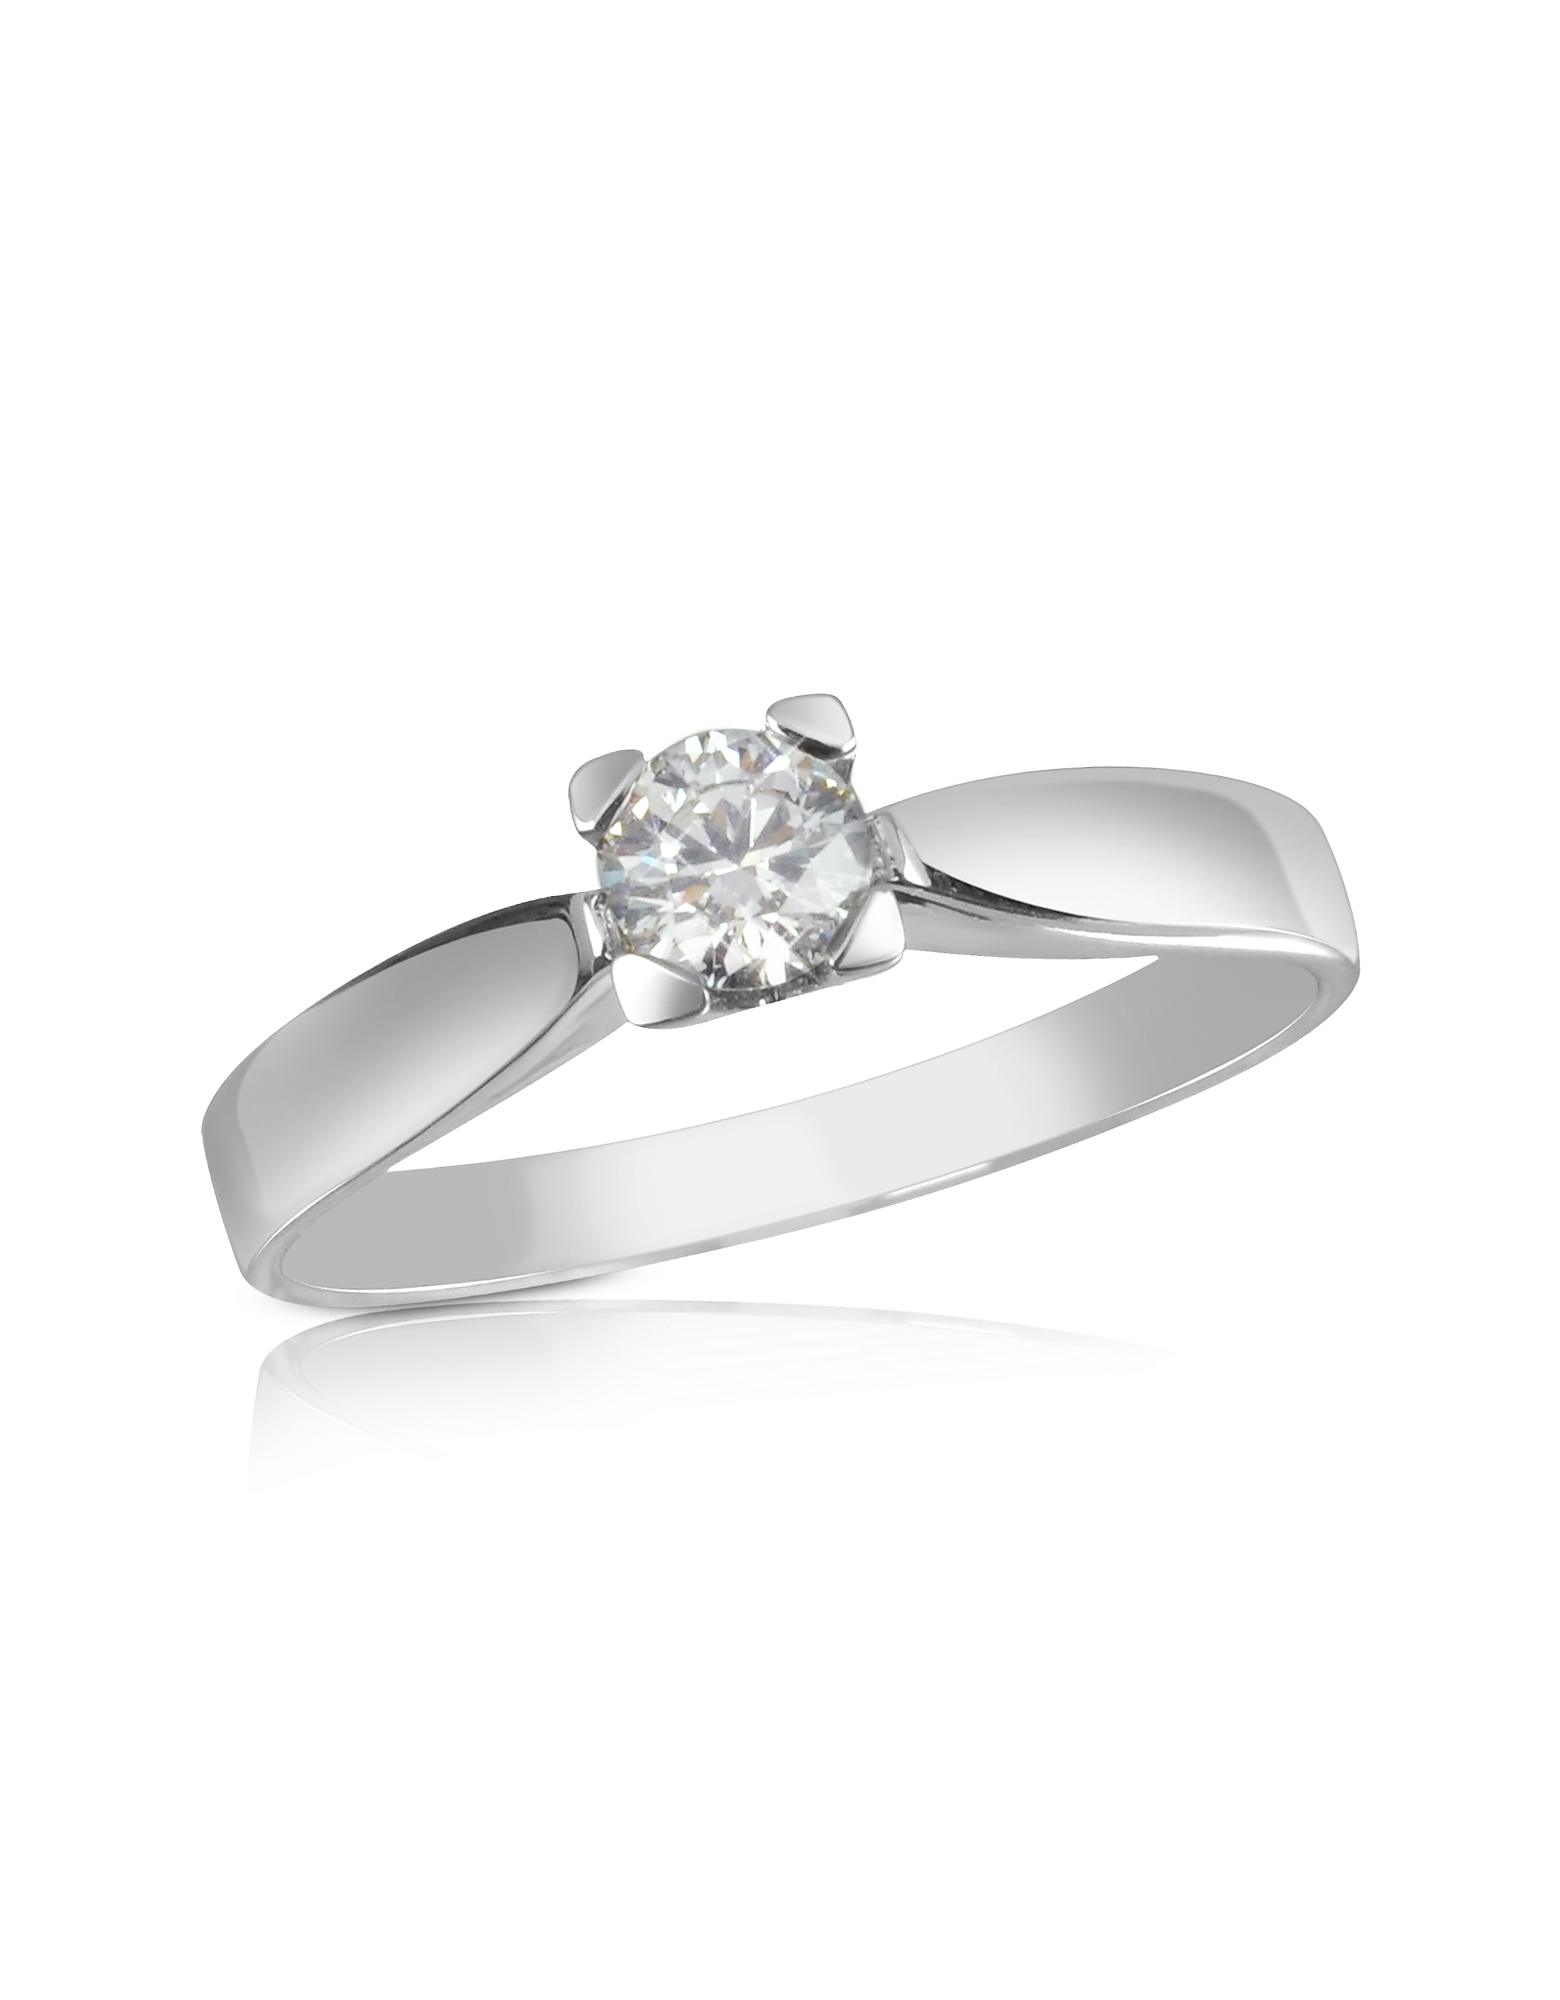 Forzieri Rings, 0.23 ctw Diamond Solitaire Ring